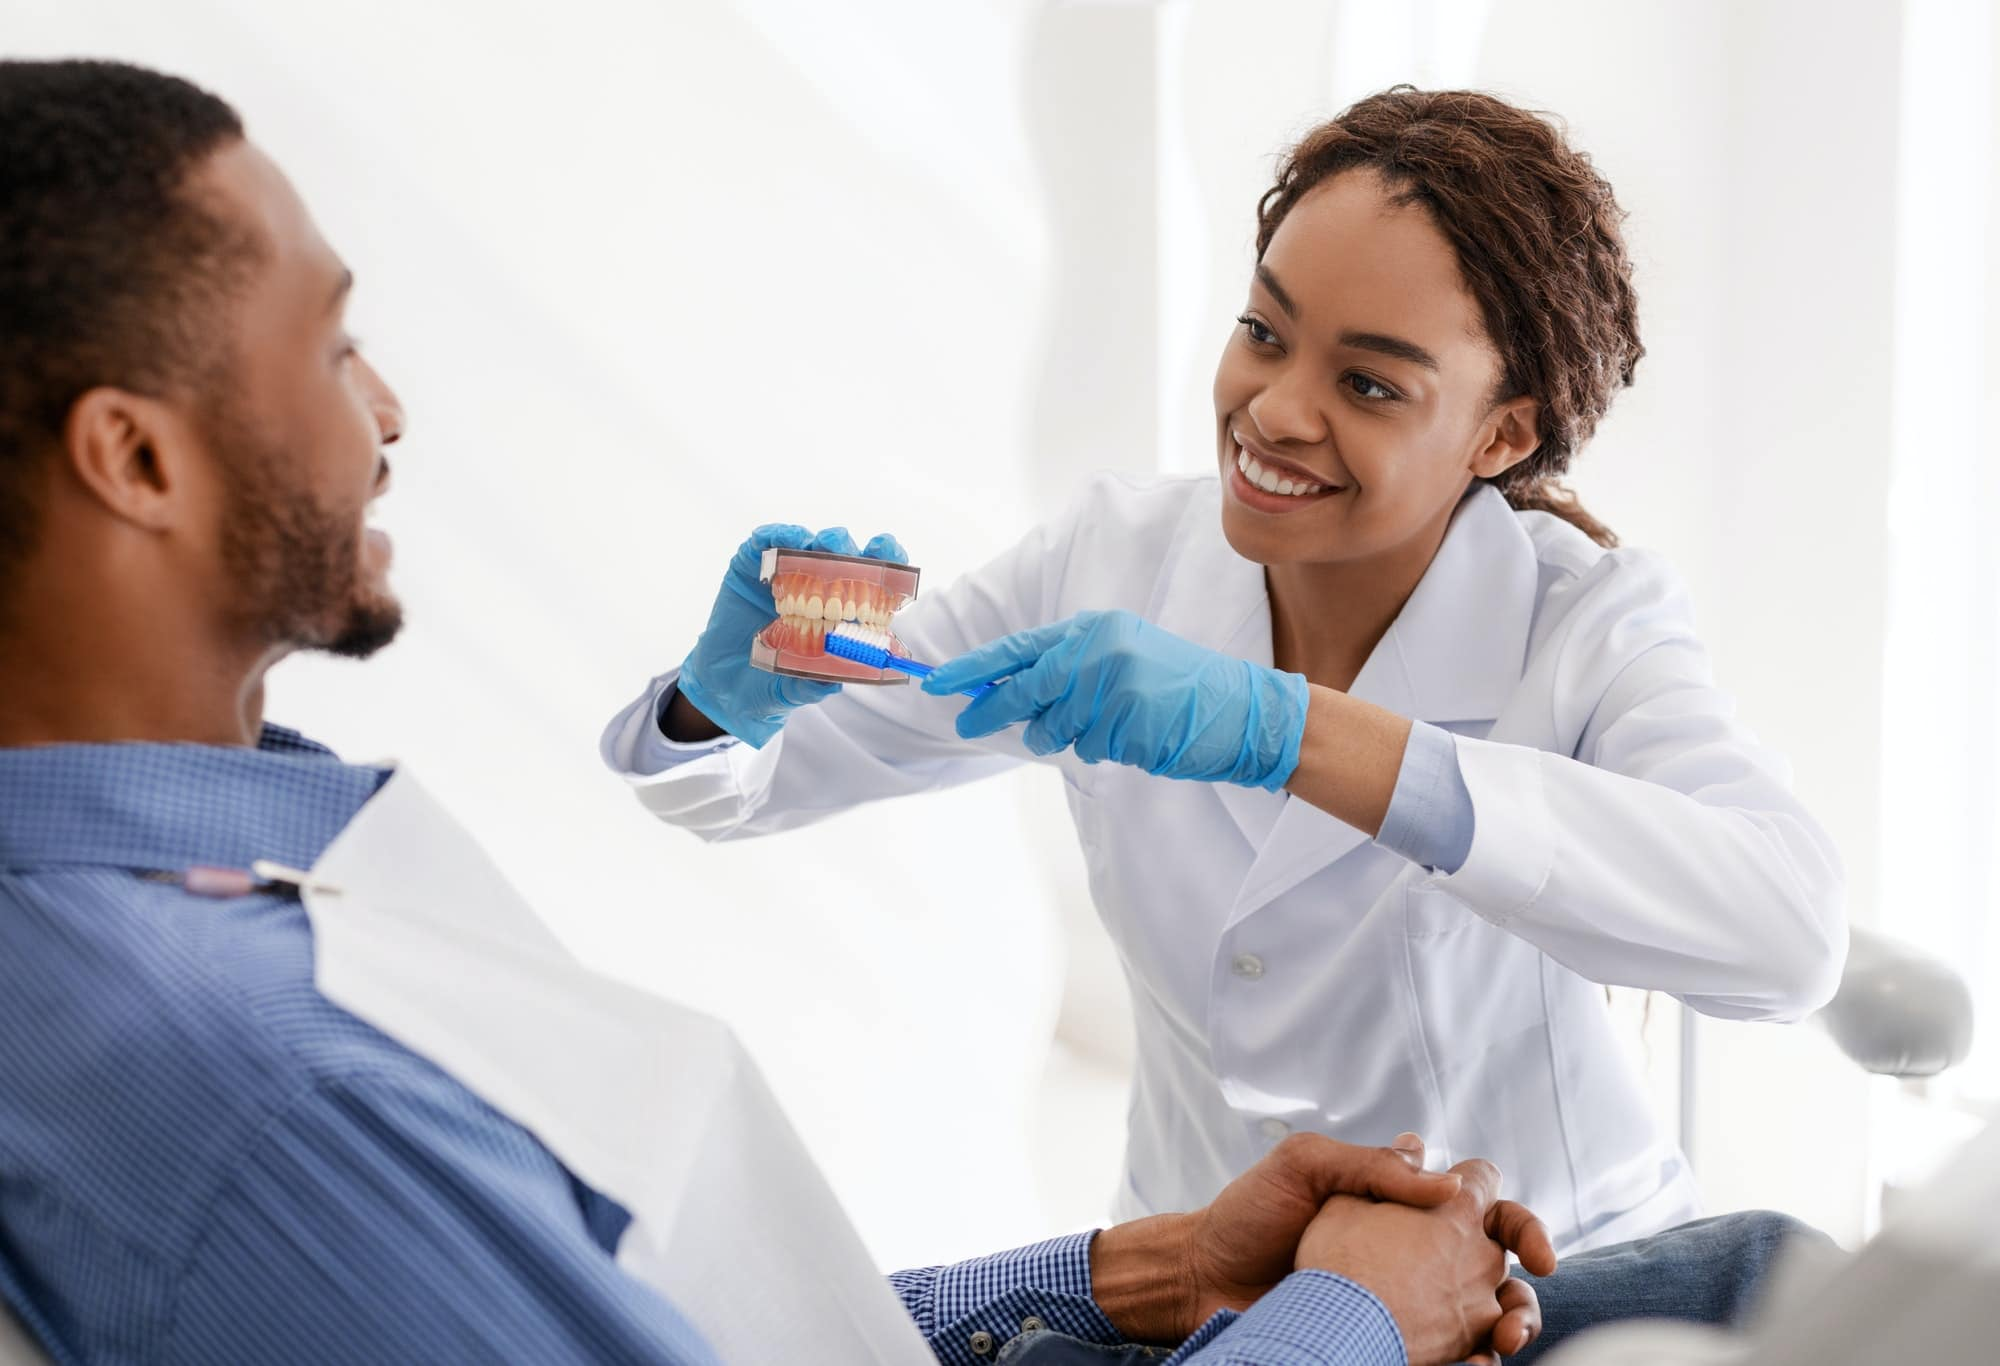 Dentist showing patient how to brush teeth in accurate way